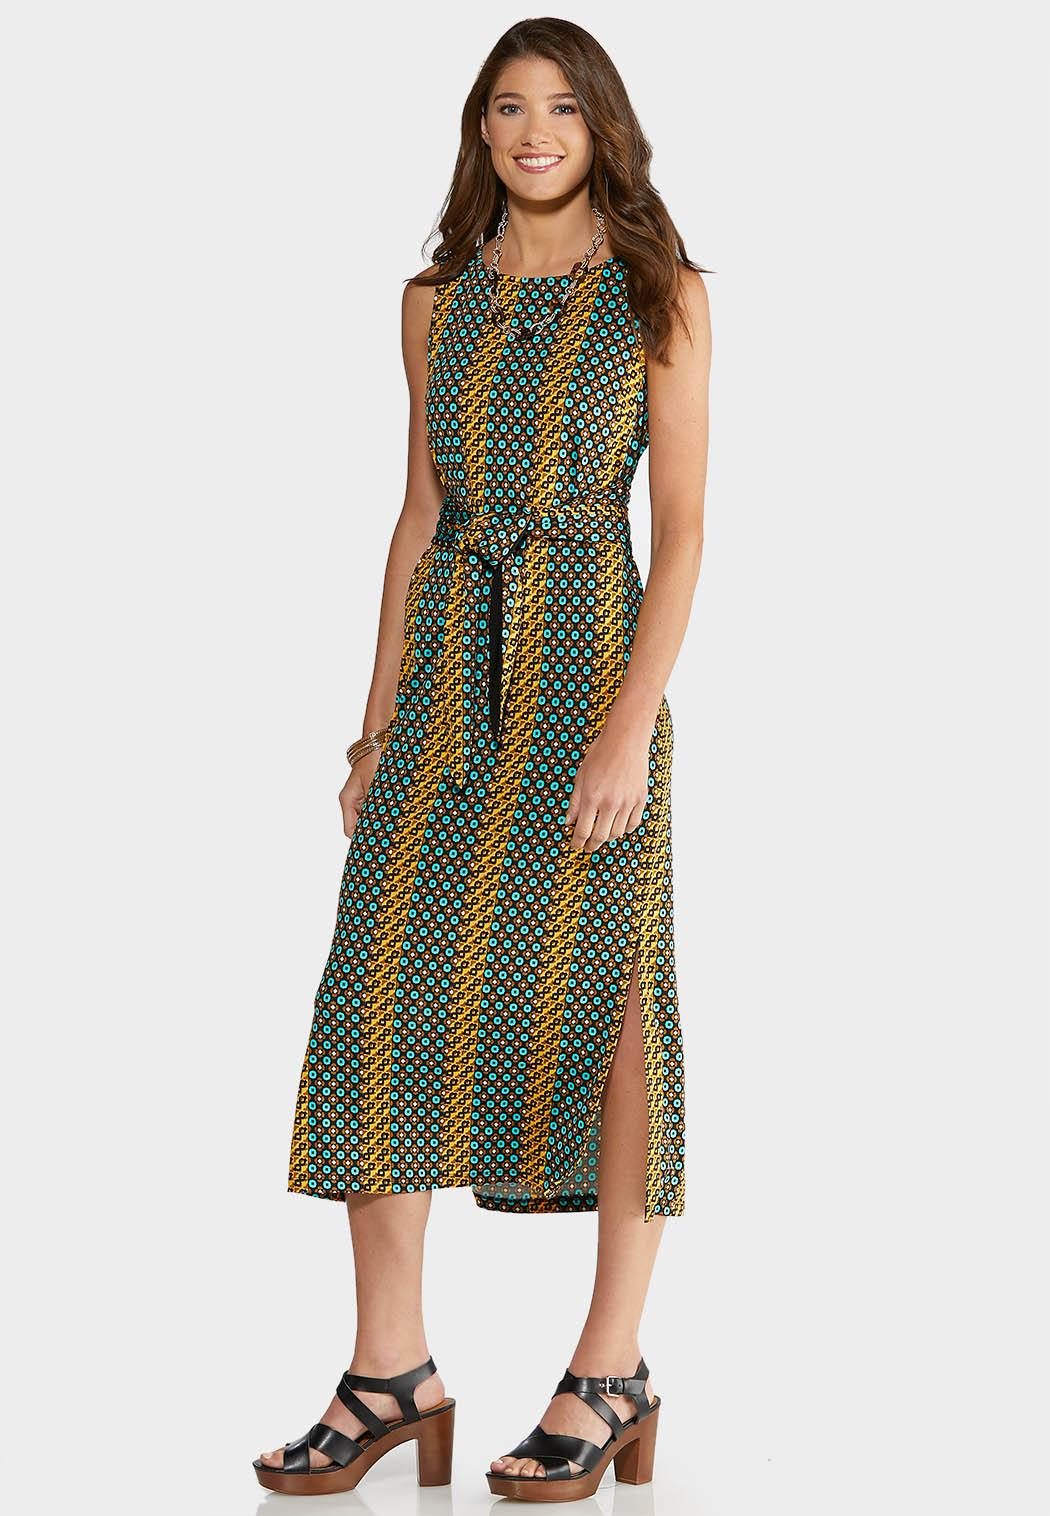 c2126029ba Women's Dresses- Fit and Flare, Swing, Maxi, Midi & More Affordable Dresses